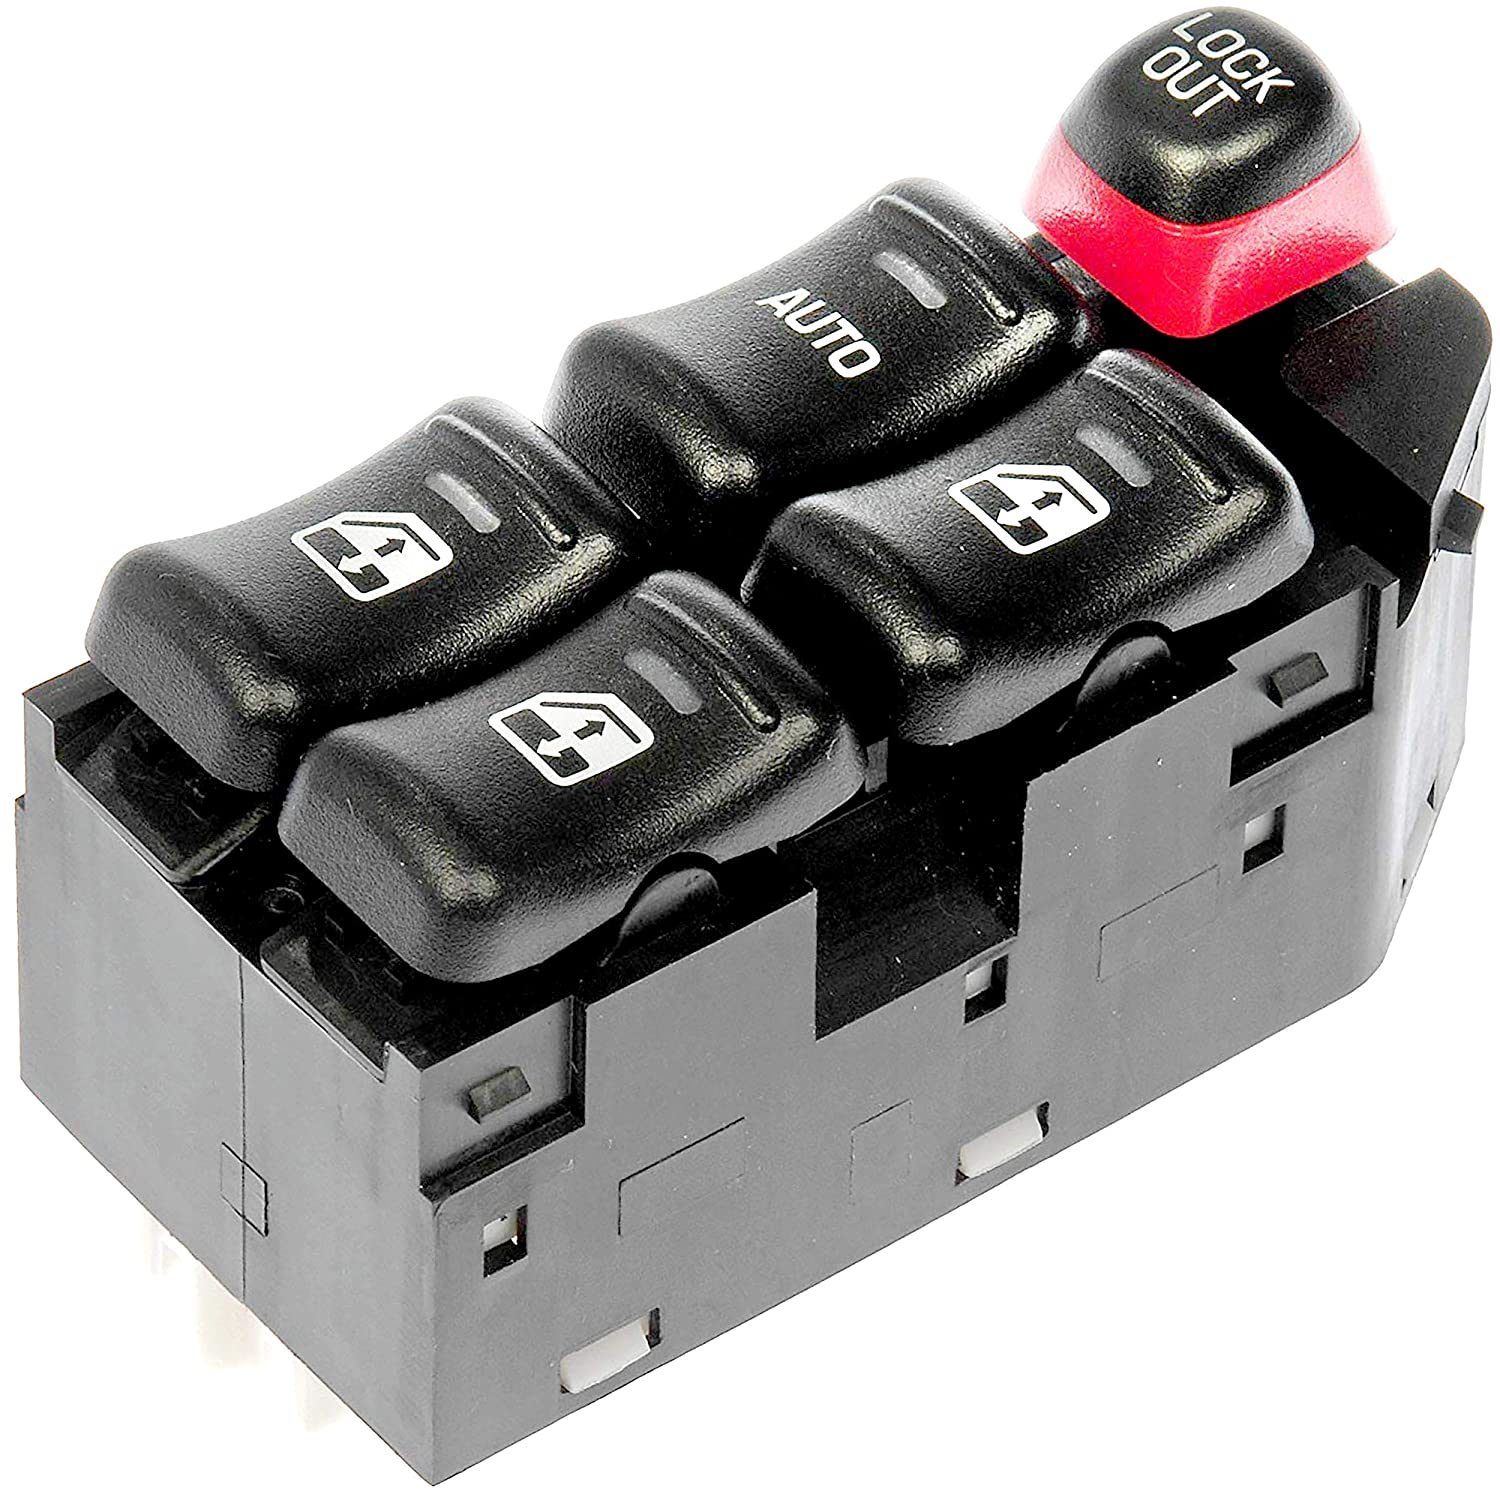 Replaces 22706008, 22609681, 22616522 APDTY 012133 Master Power Window Switch Fits Front Left 2004-2005 Chevrolet Classic 1997-2003 Chevrolet Malibu 1997-1999 Olds Oldsmobile Cutlass